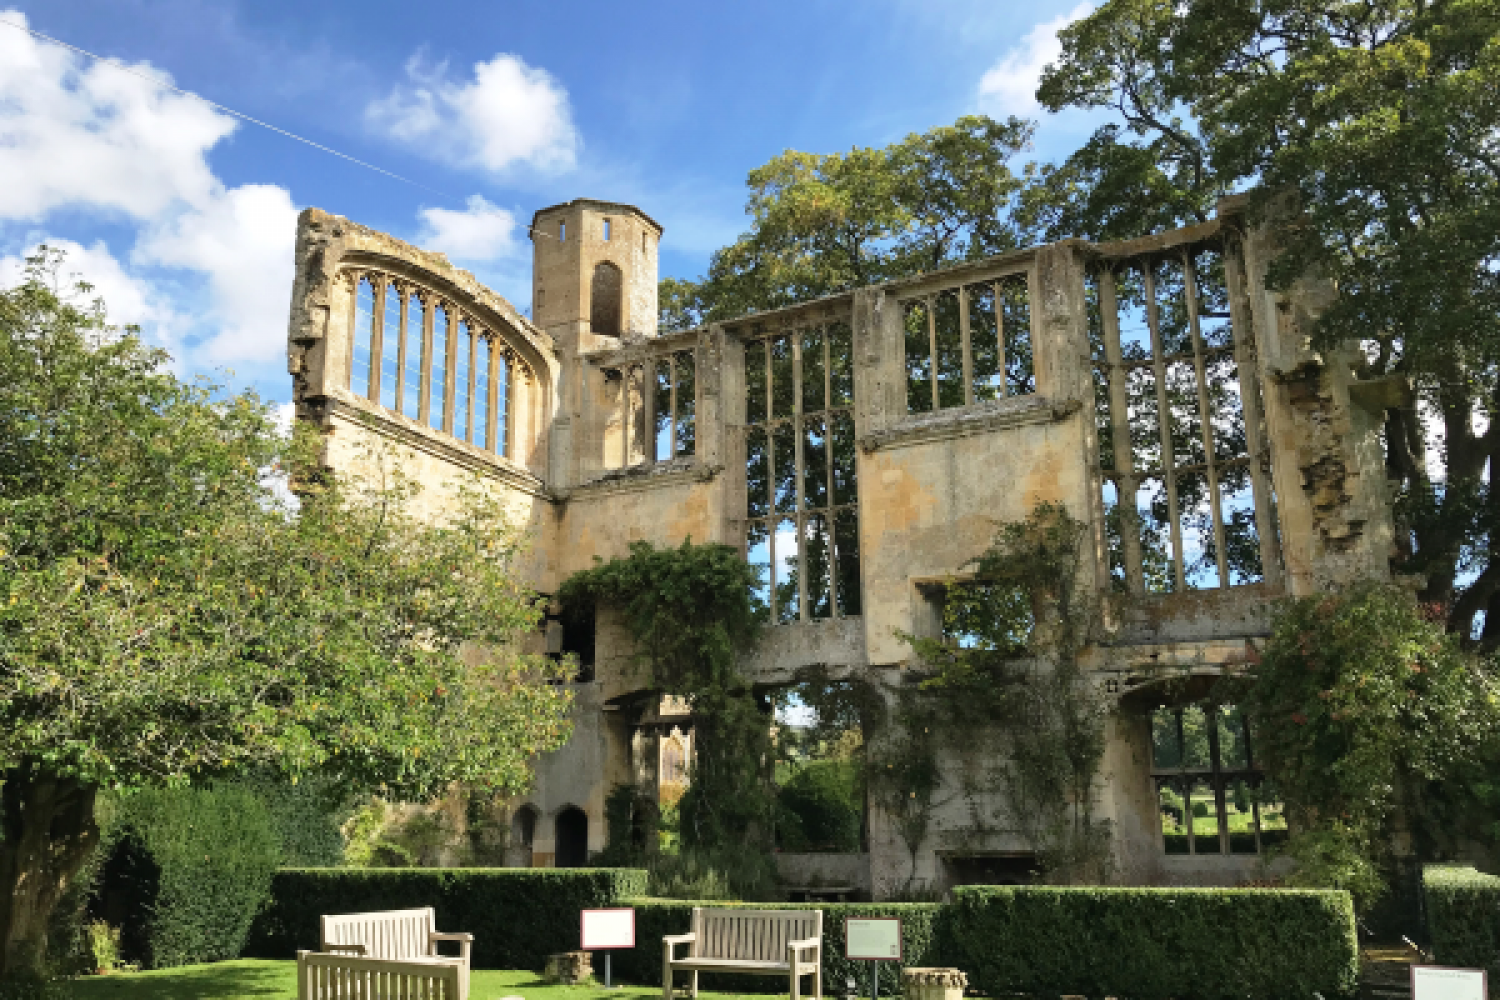 Exterior photo of ruins at Sudeley Castle